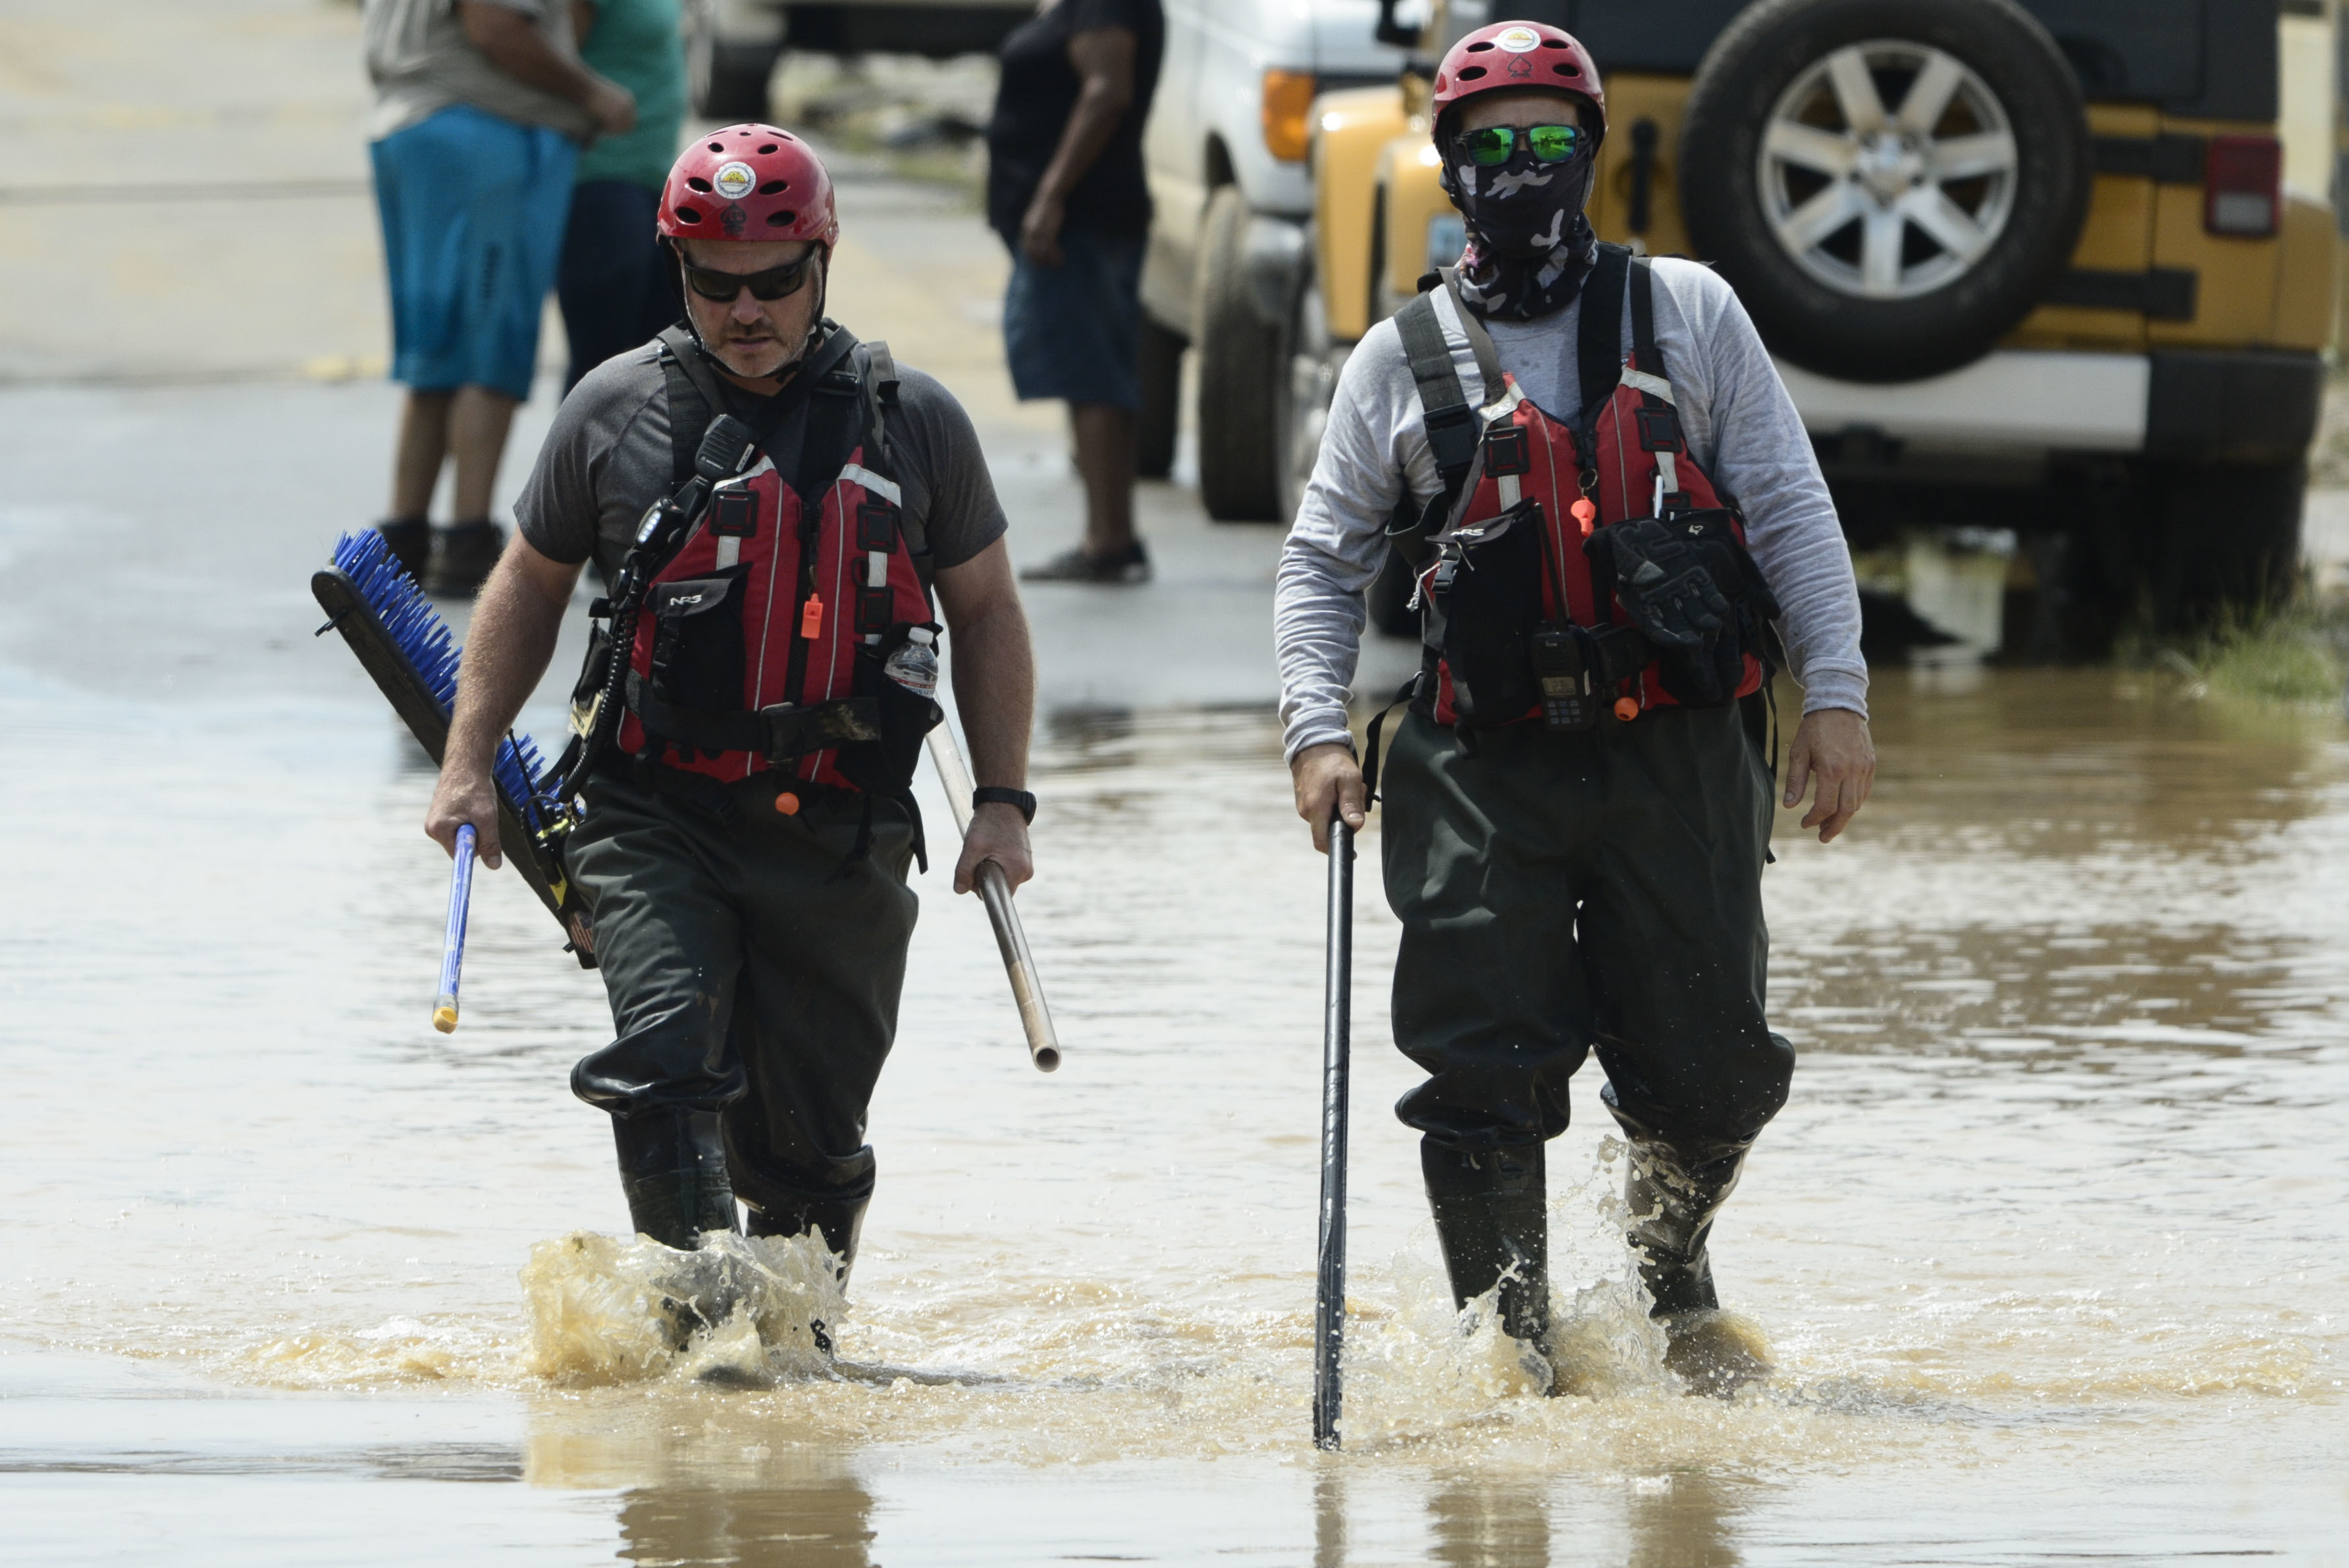 Personnel from a FEMA search and rescue crew walk in a flooded road, after the passing of Hurricane Maria, in Toa Baja, Puerto Rico, Friday, September 22, 2017. Because of the heavy rains brought by Maria, thousands of people were evacuated from Toa Baja after the municipal government opened the gates of the Rio La Plata Dam. (AP Photo/Carlos Giusti)